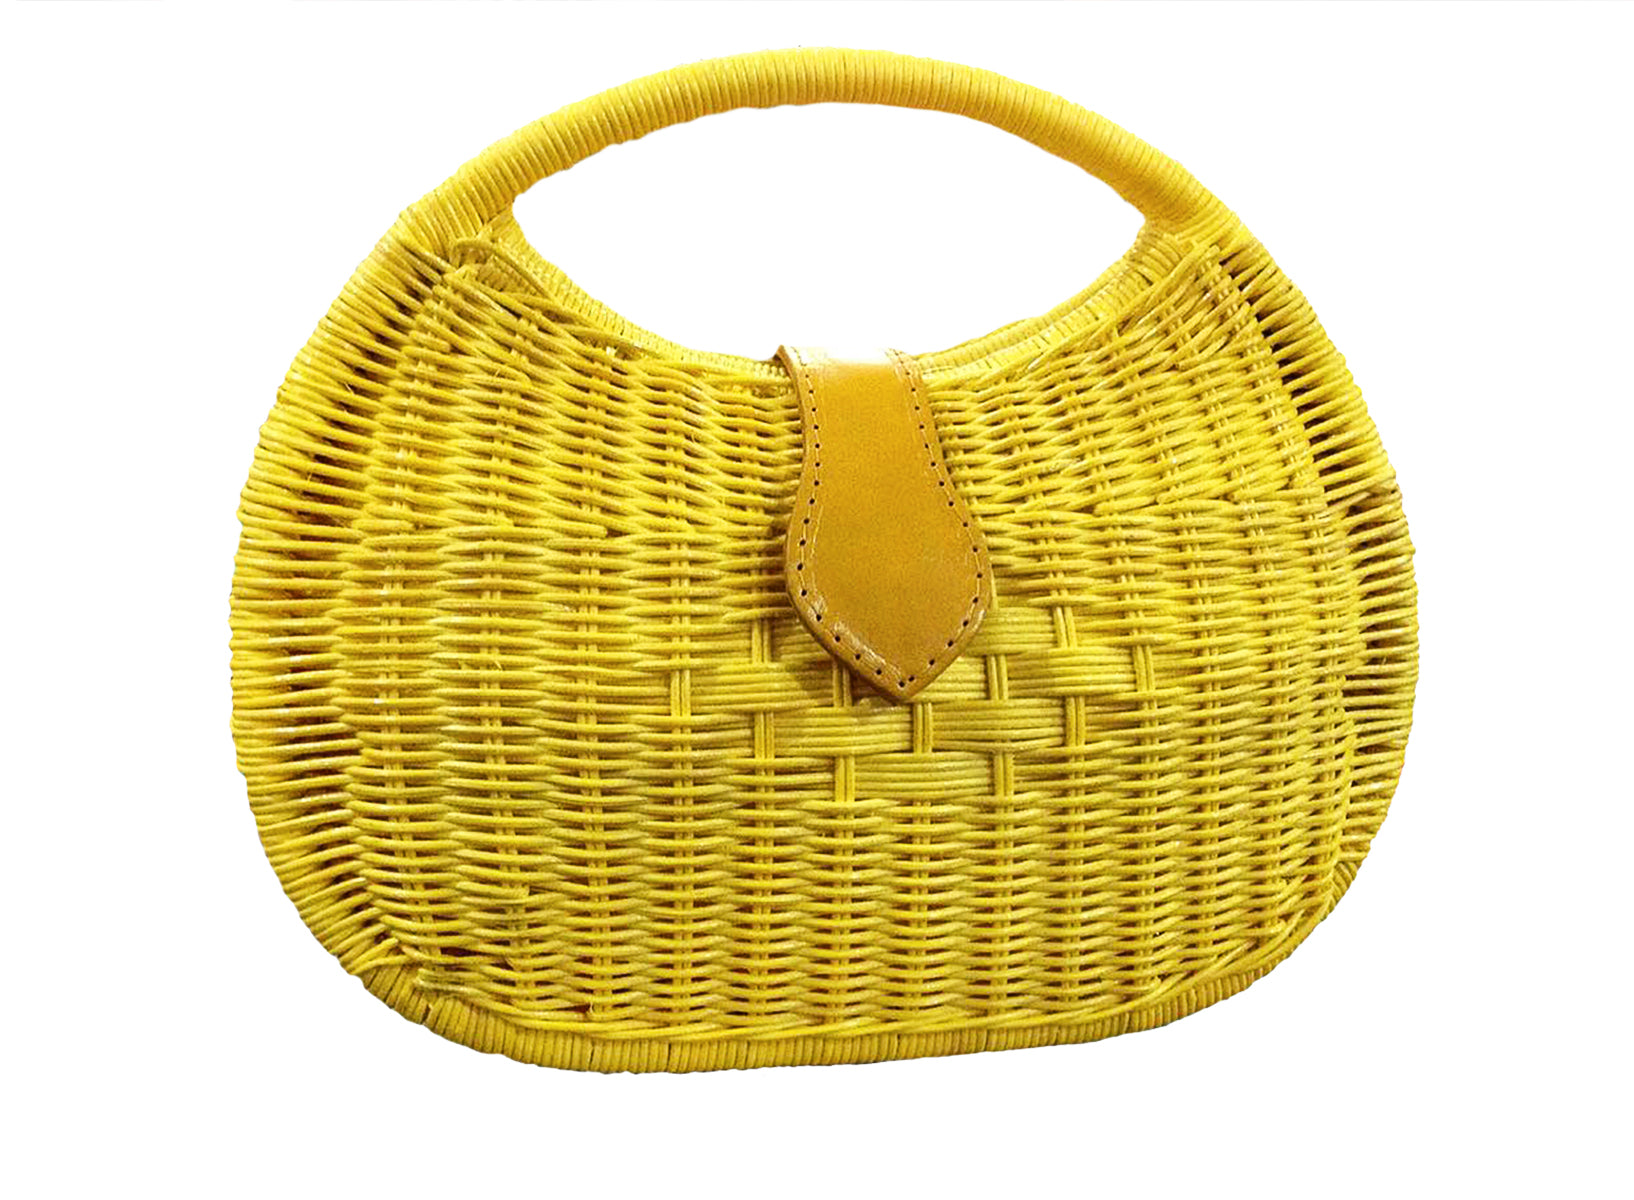 Exclusive Luxe Wicker Rattan Basket Bag